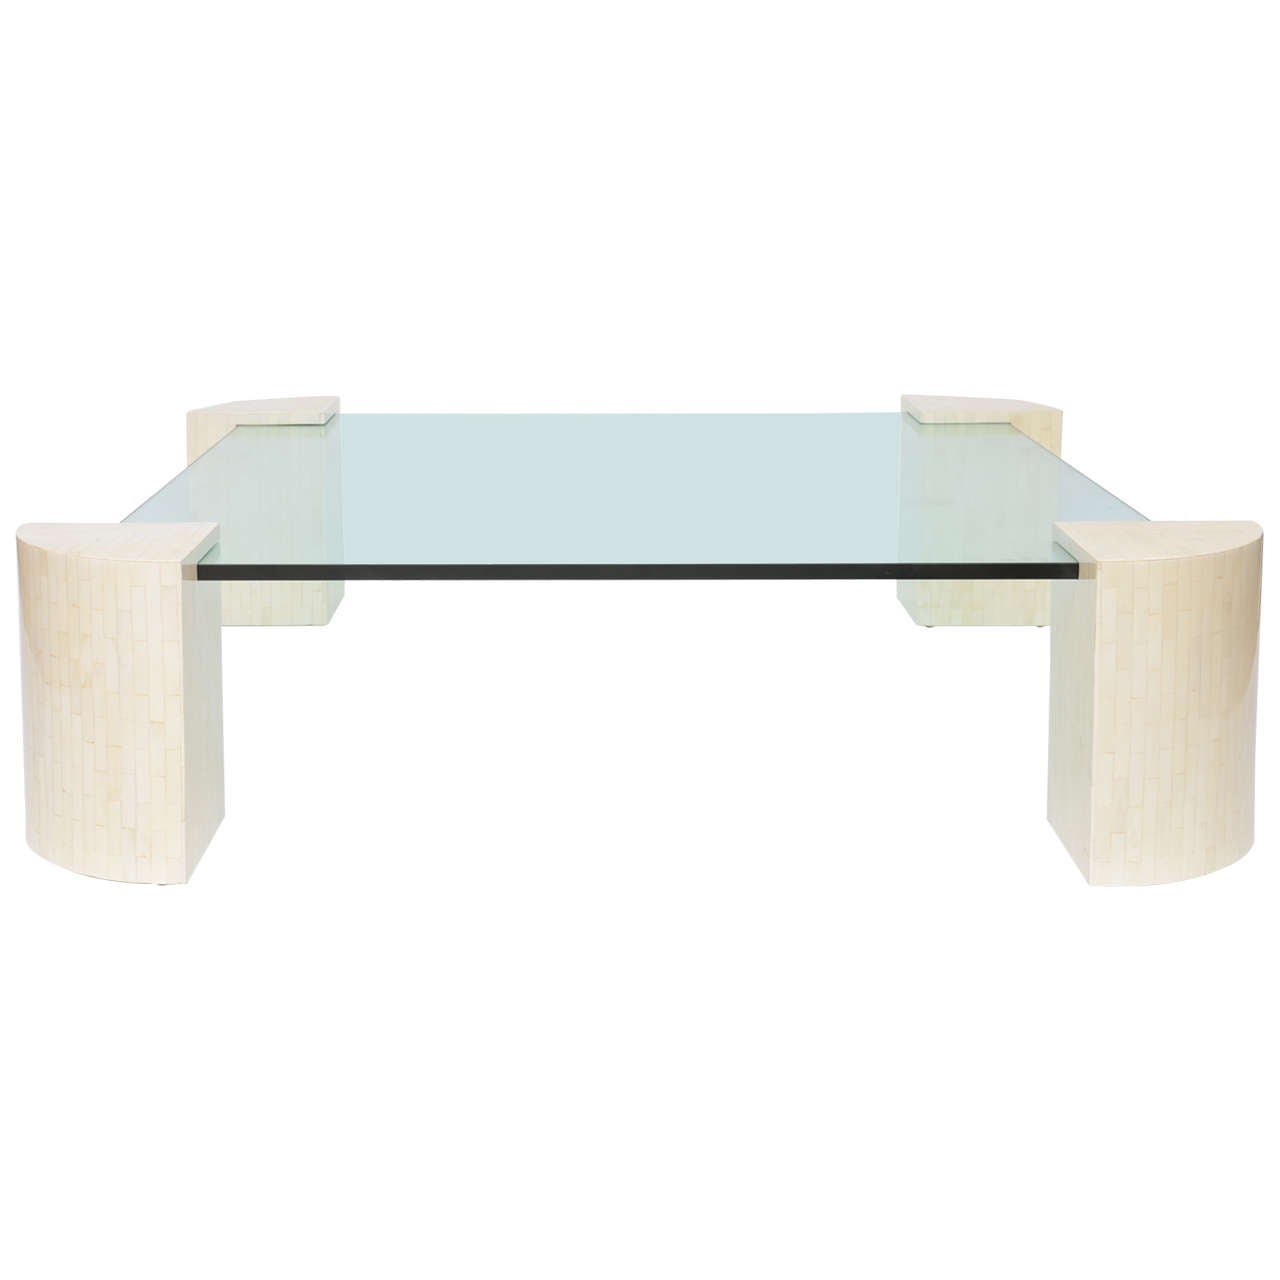 Large bone and glass coffee table at 1stdibs for Large glass coffee table